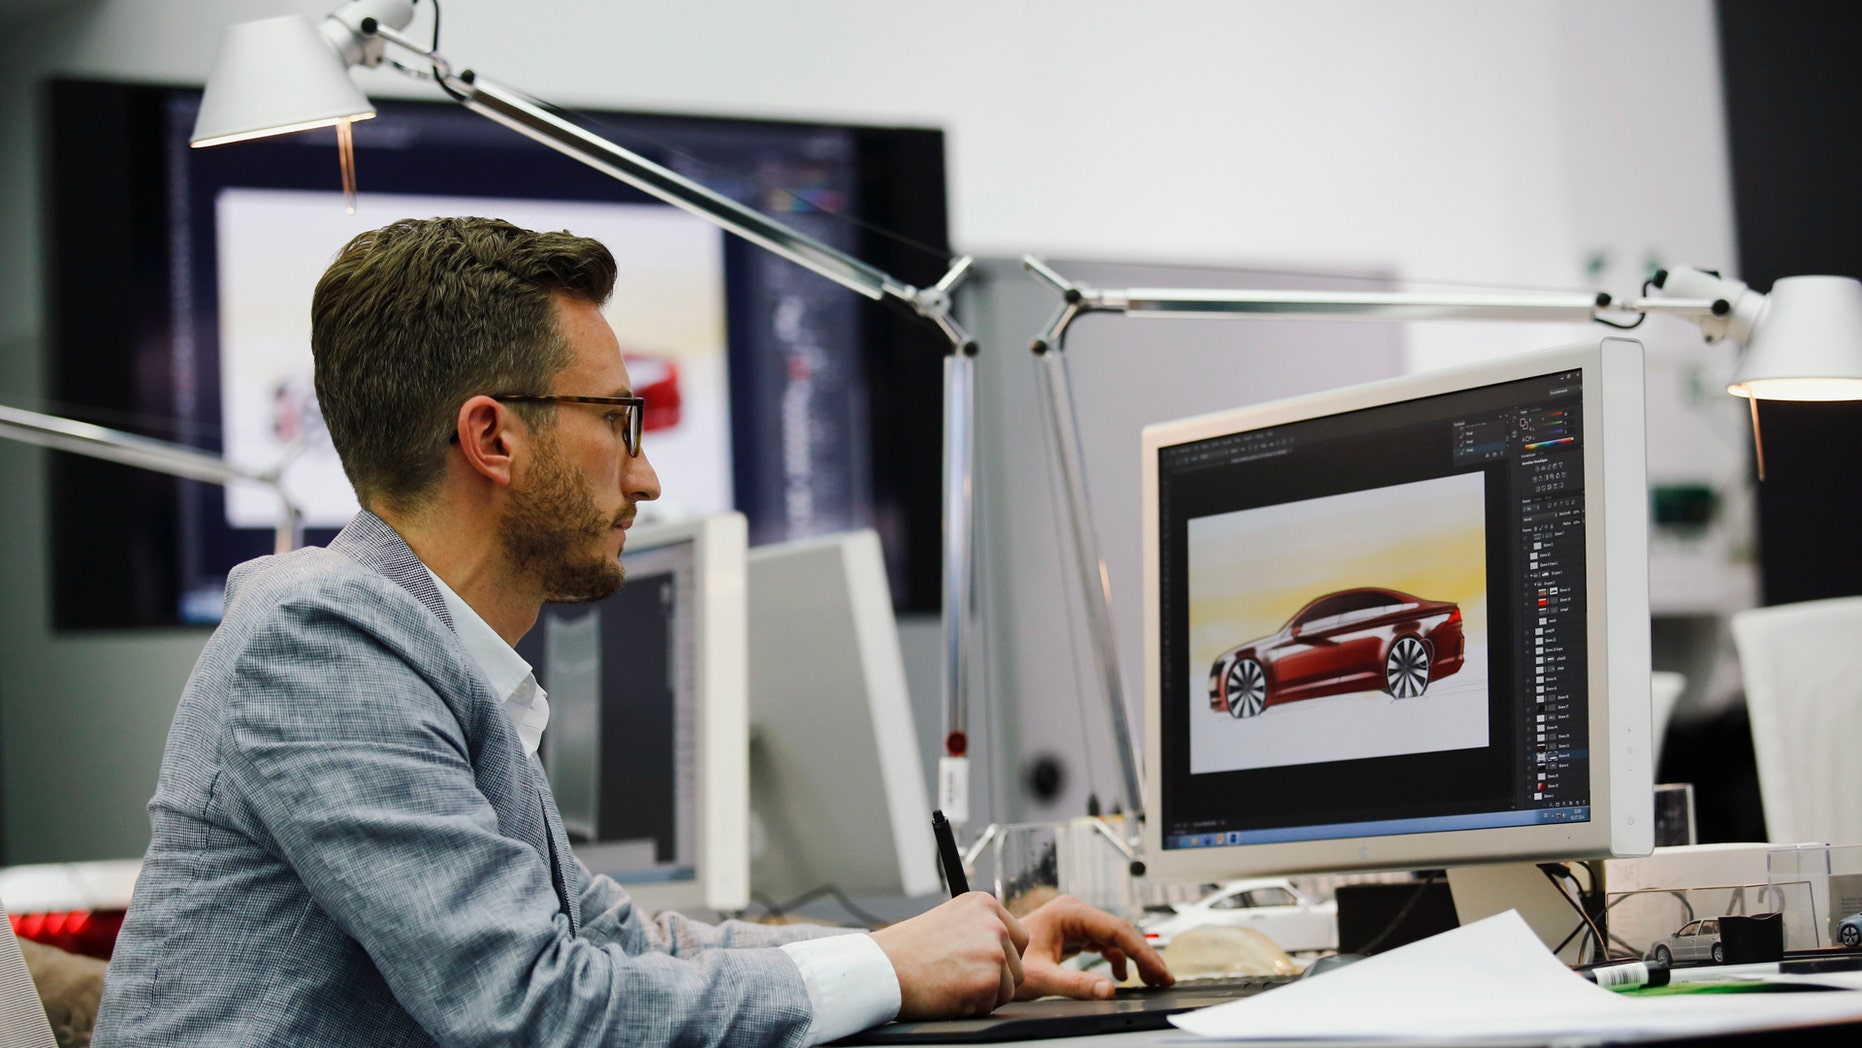 File photo: A man works in a showcase design studio at the fringes of a launch ceremony presenting the new Volkswagen Passat at the Volkswagen Design Center in Potsdam July 3, 2014. (REUTERS/Thomas Peter GERMANY - Tags: TRANSPORT BUSINESS)